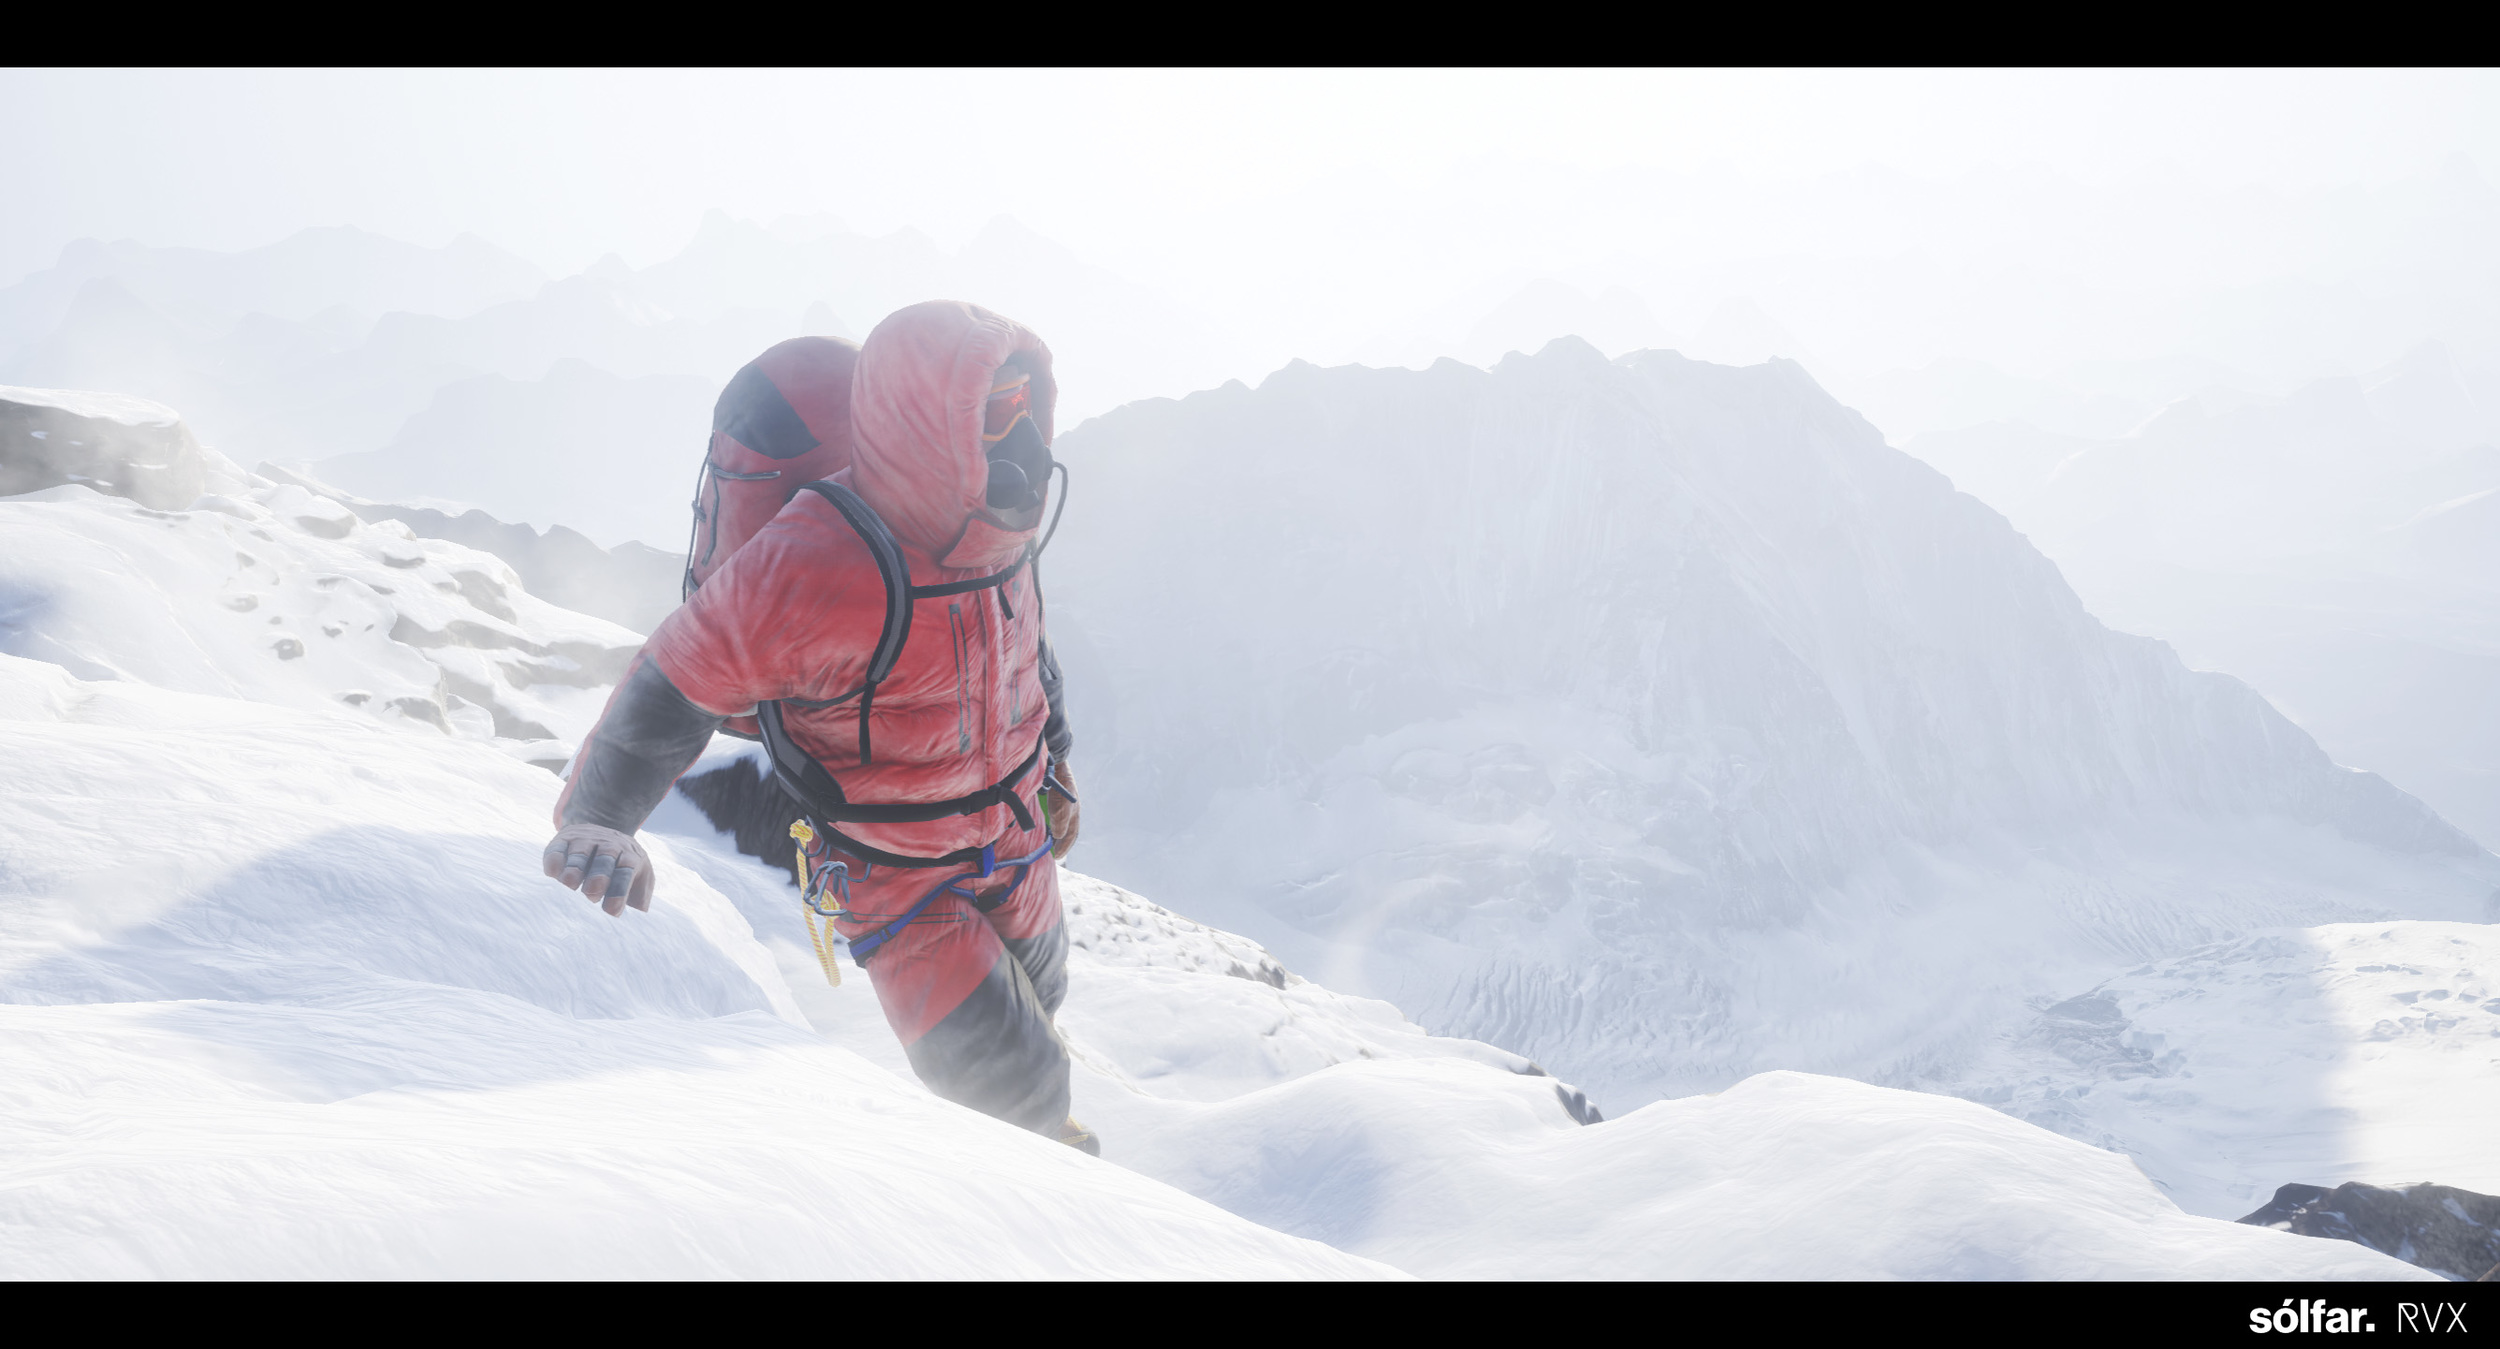 Everest_VR Hillary Step1.jpg